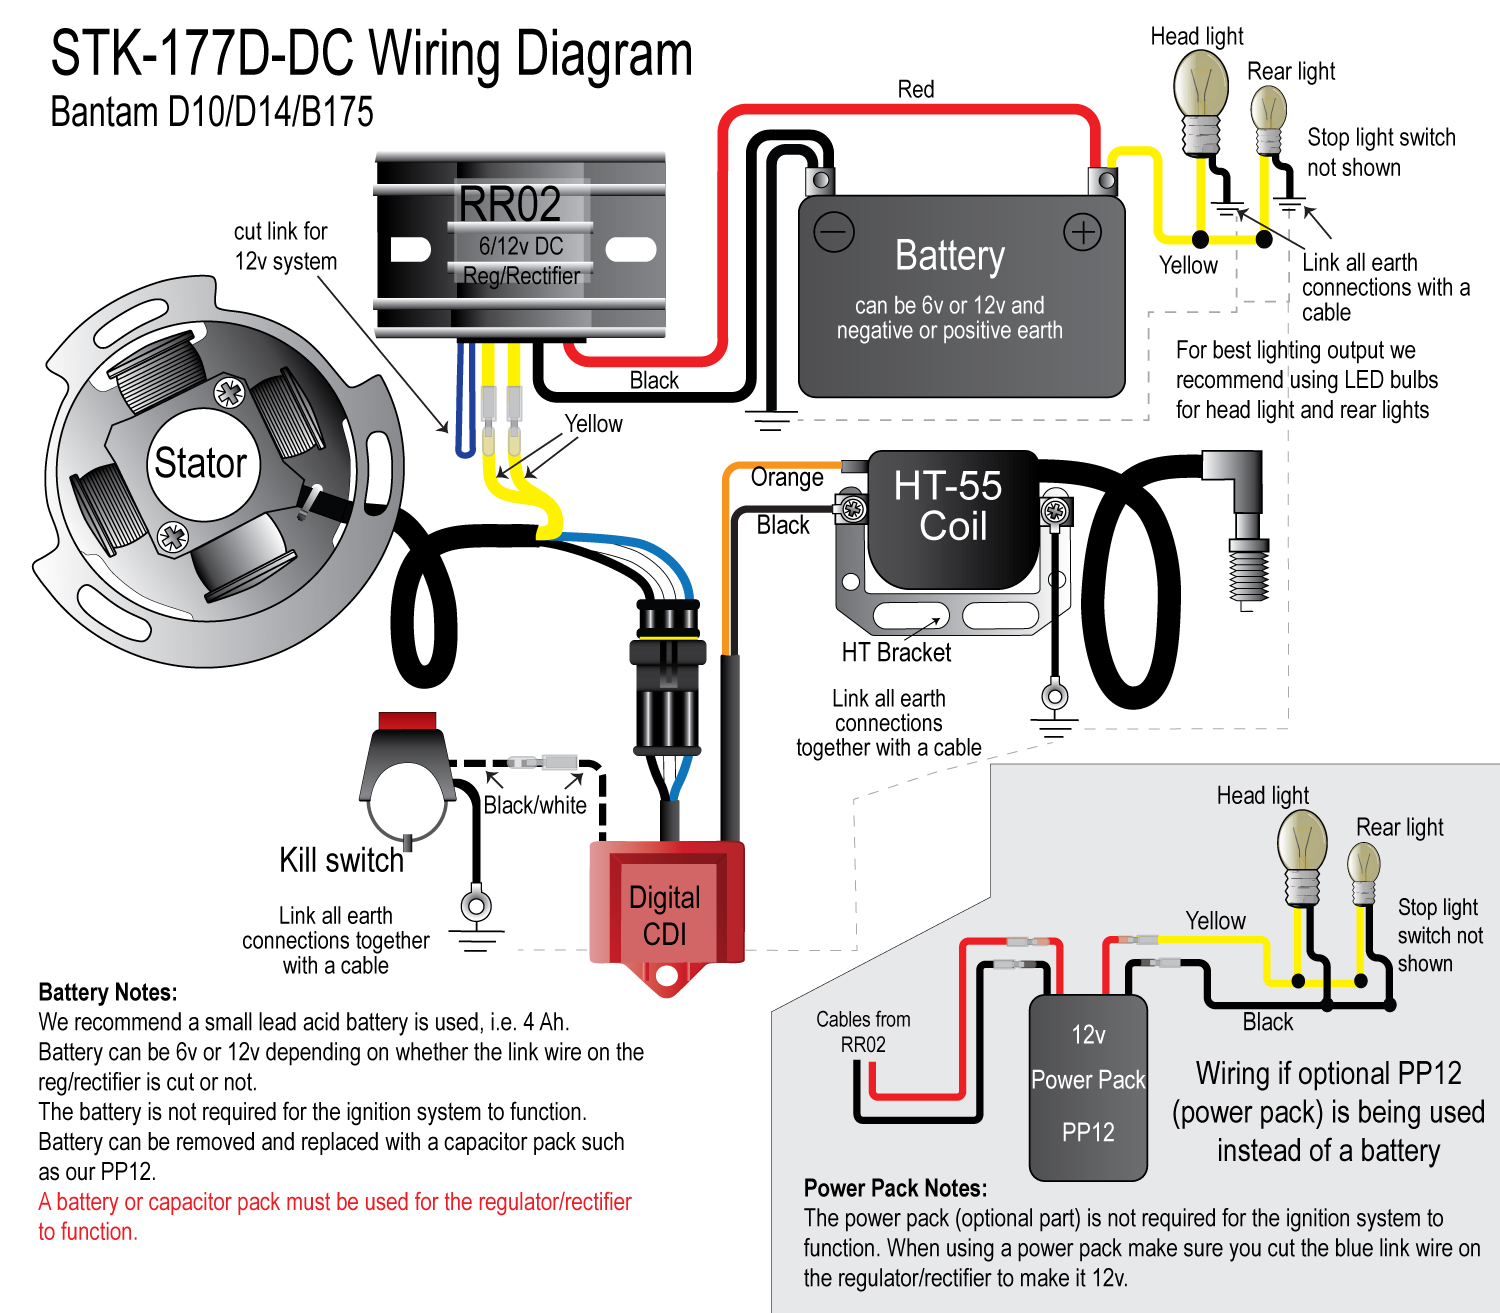 STK 177 wiring diagram cdi ignition lighting external rotor kit for bsa bantam d10, d14 electrex world wiring diagram at reclaimingppi.co